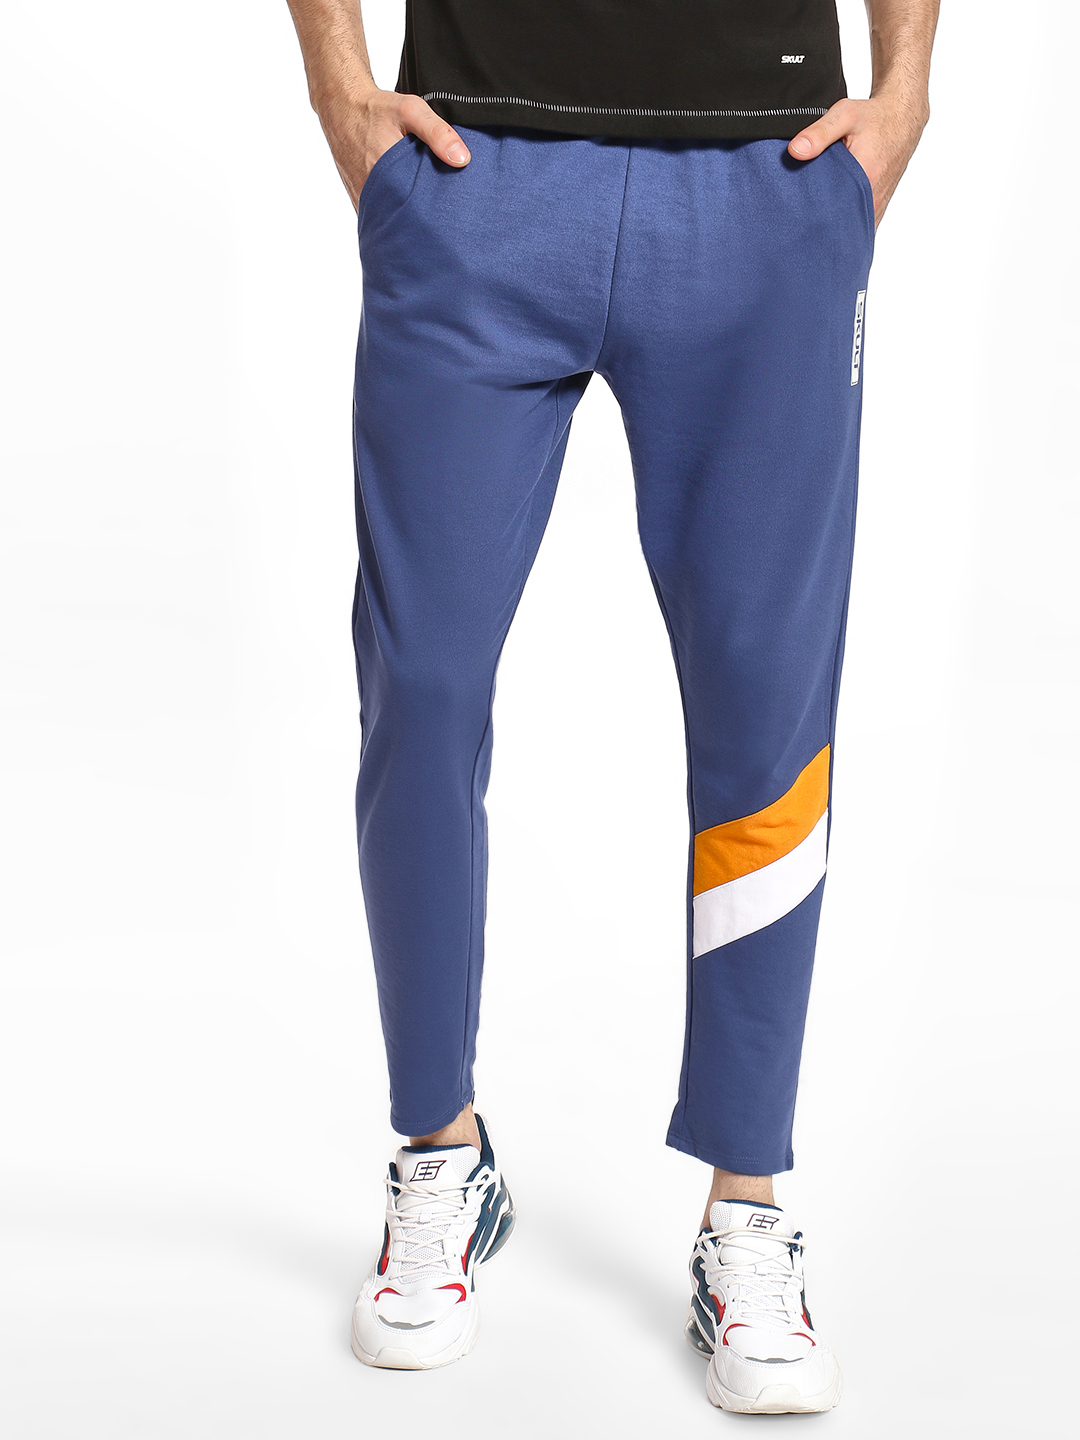 SKULT By Shahid Kapoor BRIGHT BLUE Cut & Sew Contrast Panel Joggers 1